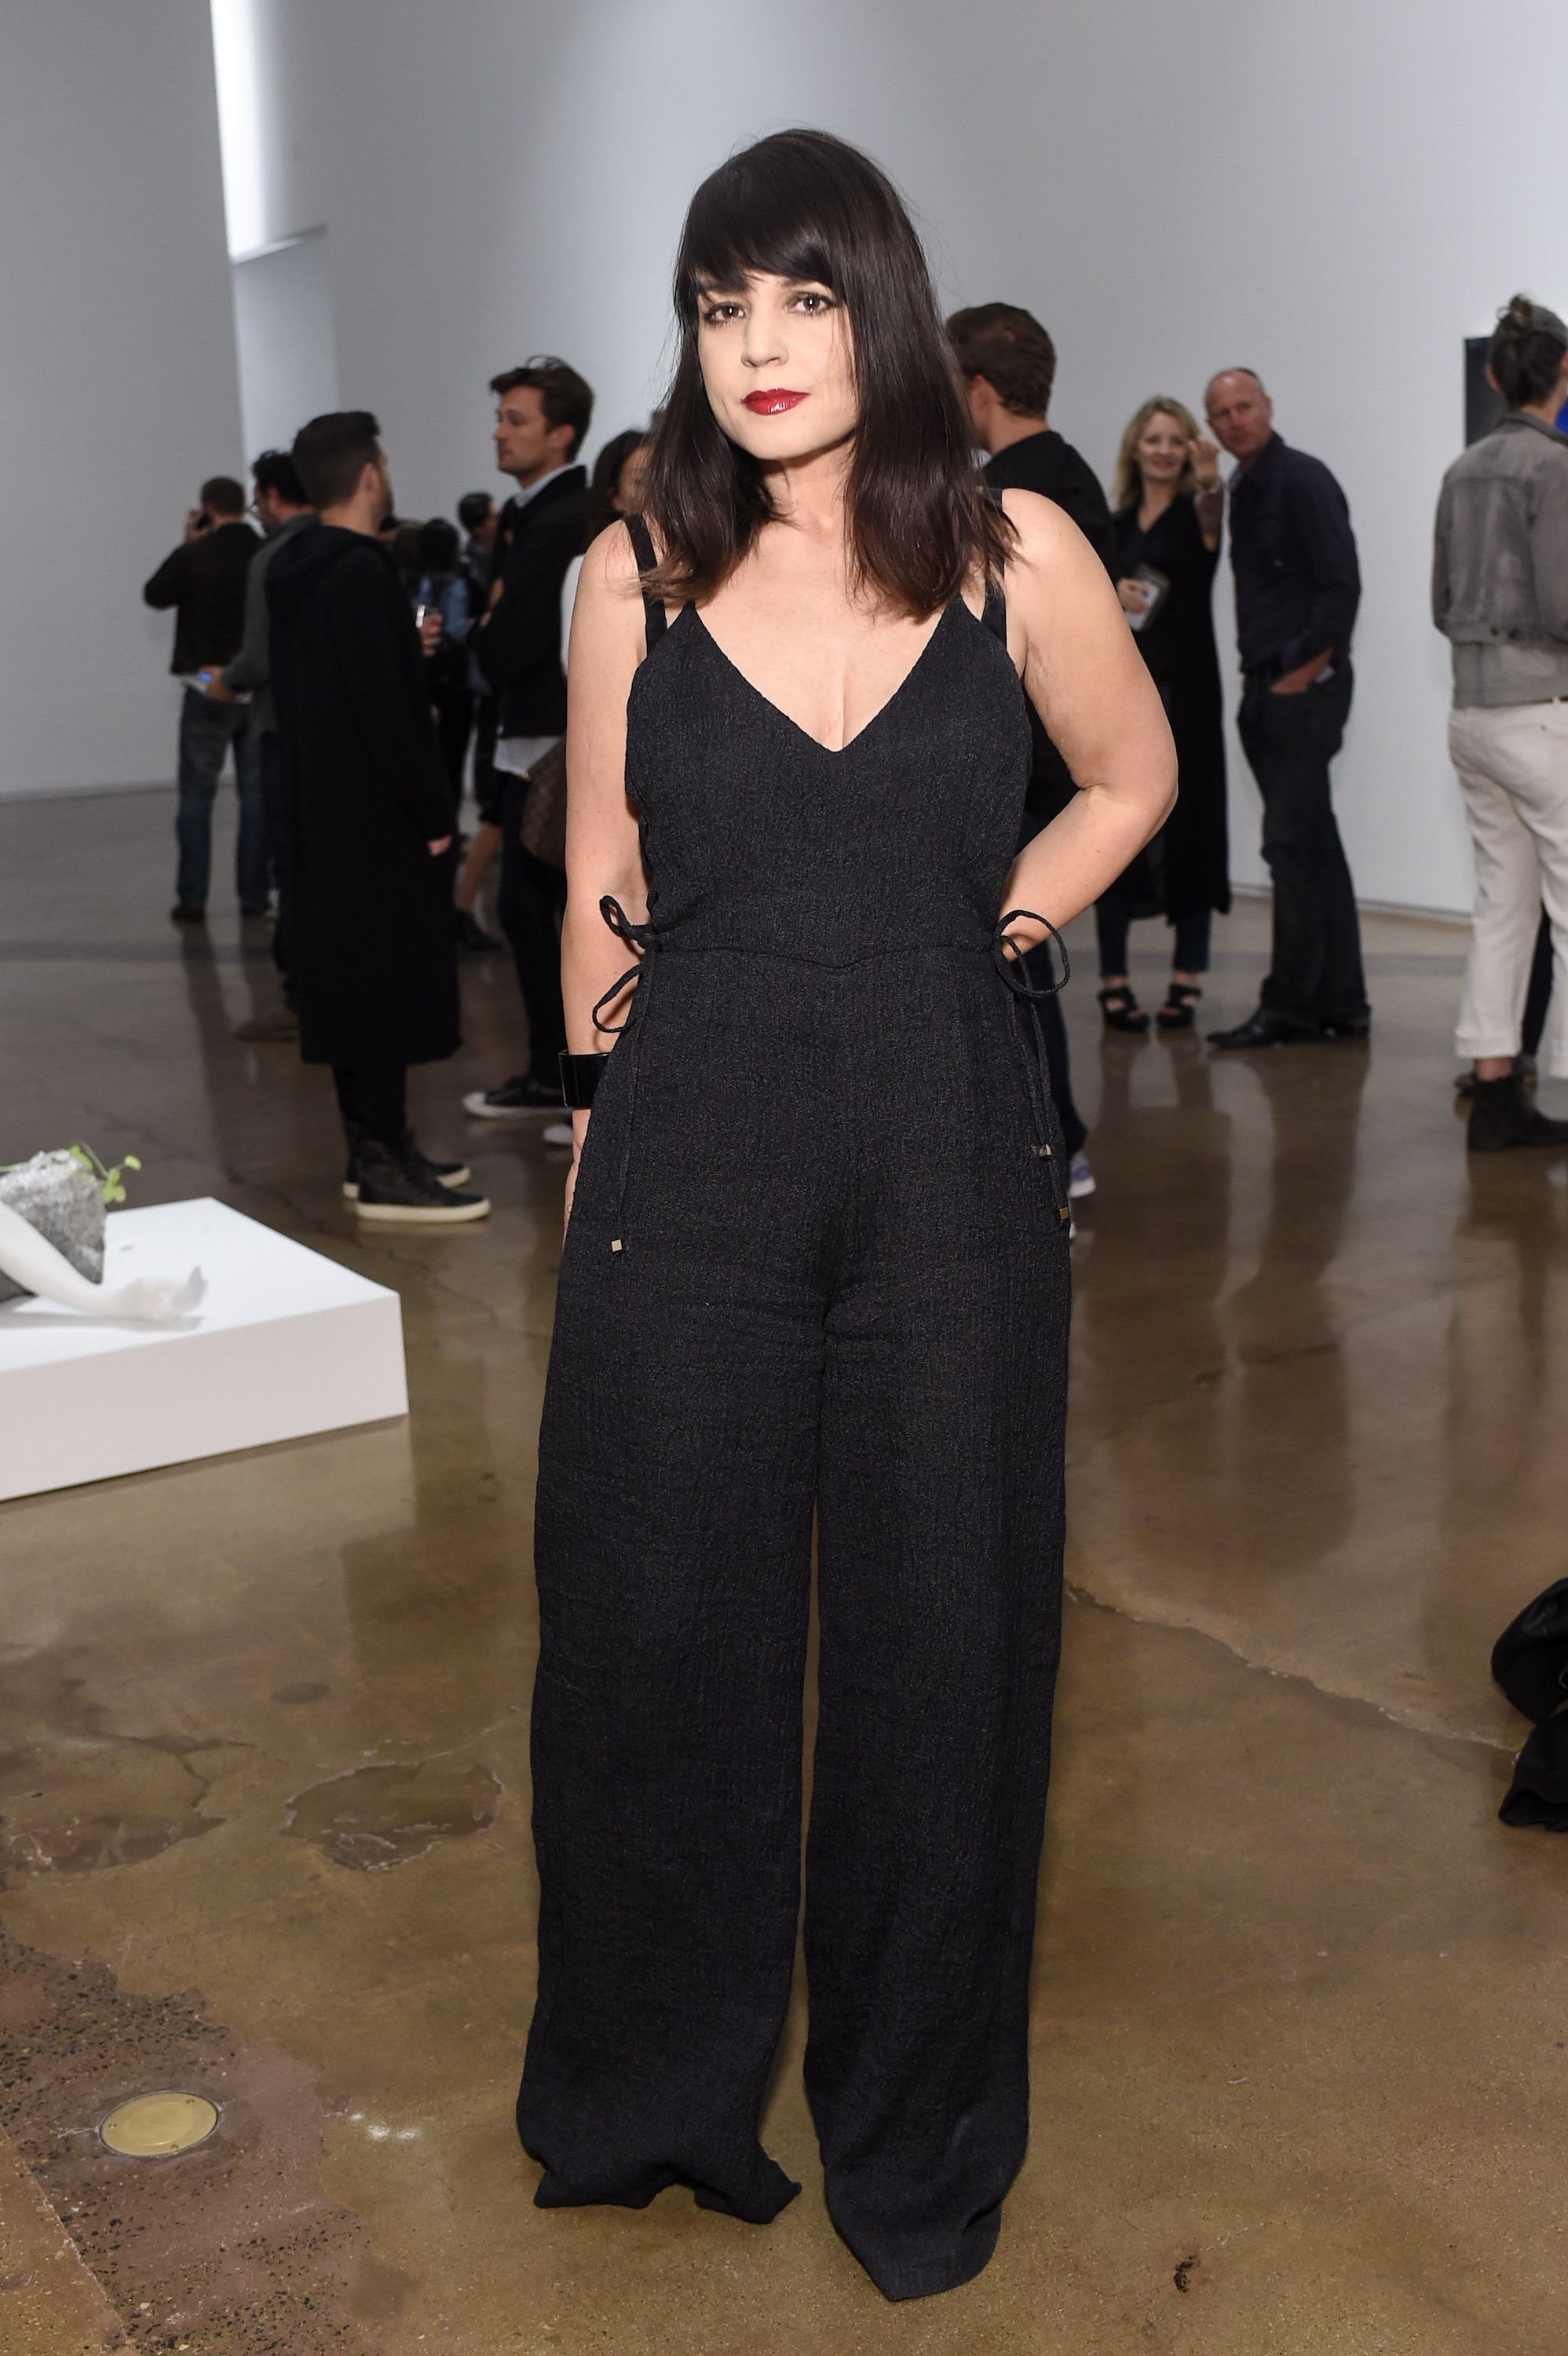 LOS ANGELES, CA - APRIL 10: Jessicka Addams attend Tom LaDuke 'Candles And Lasers'  on April 10, 2015 in Los Angeles, California. (Photo by Stefanie Keenan/Getty Images for Kohn Gallery)